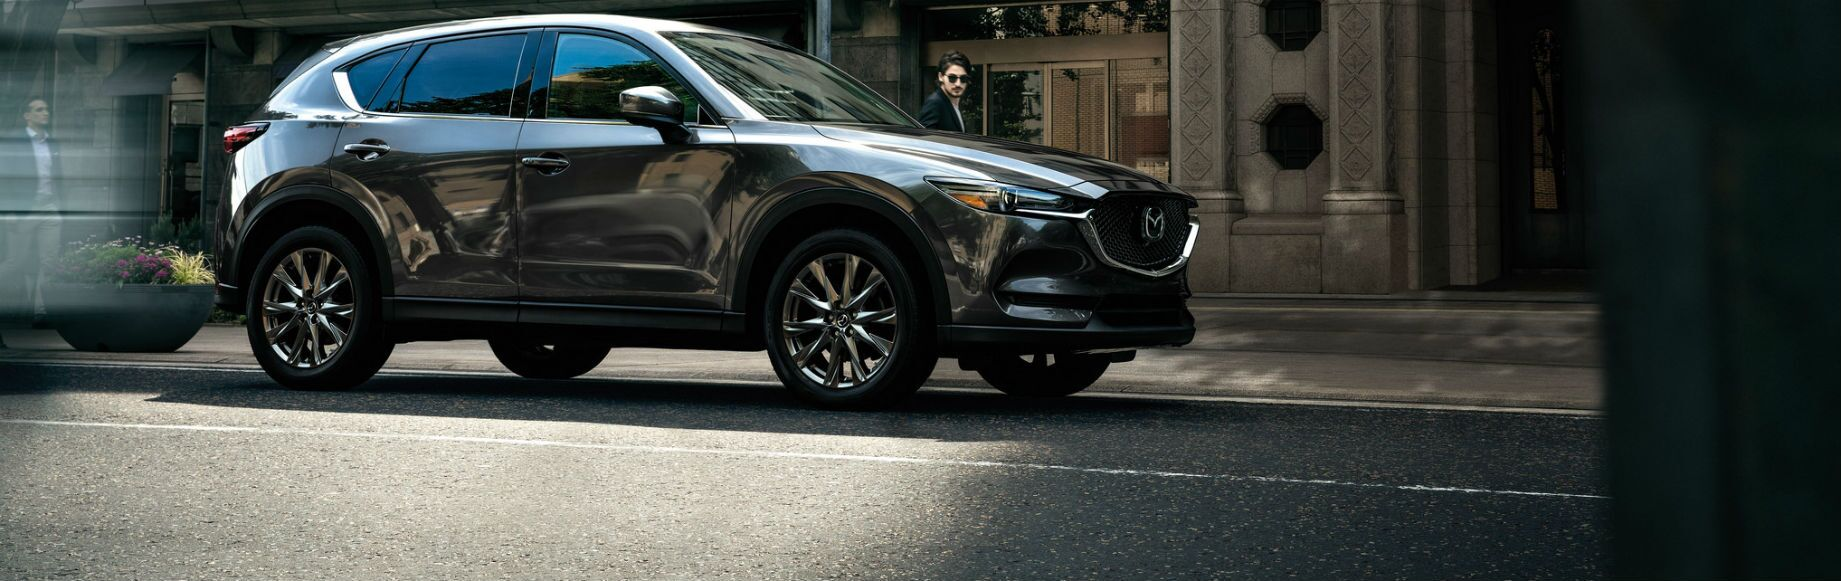 2019 Mazda CX-5 in Edinburg, TX